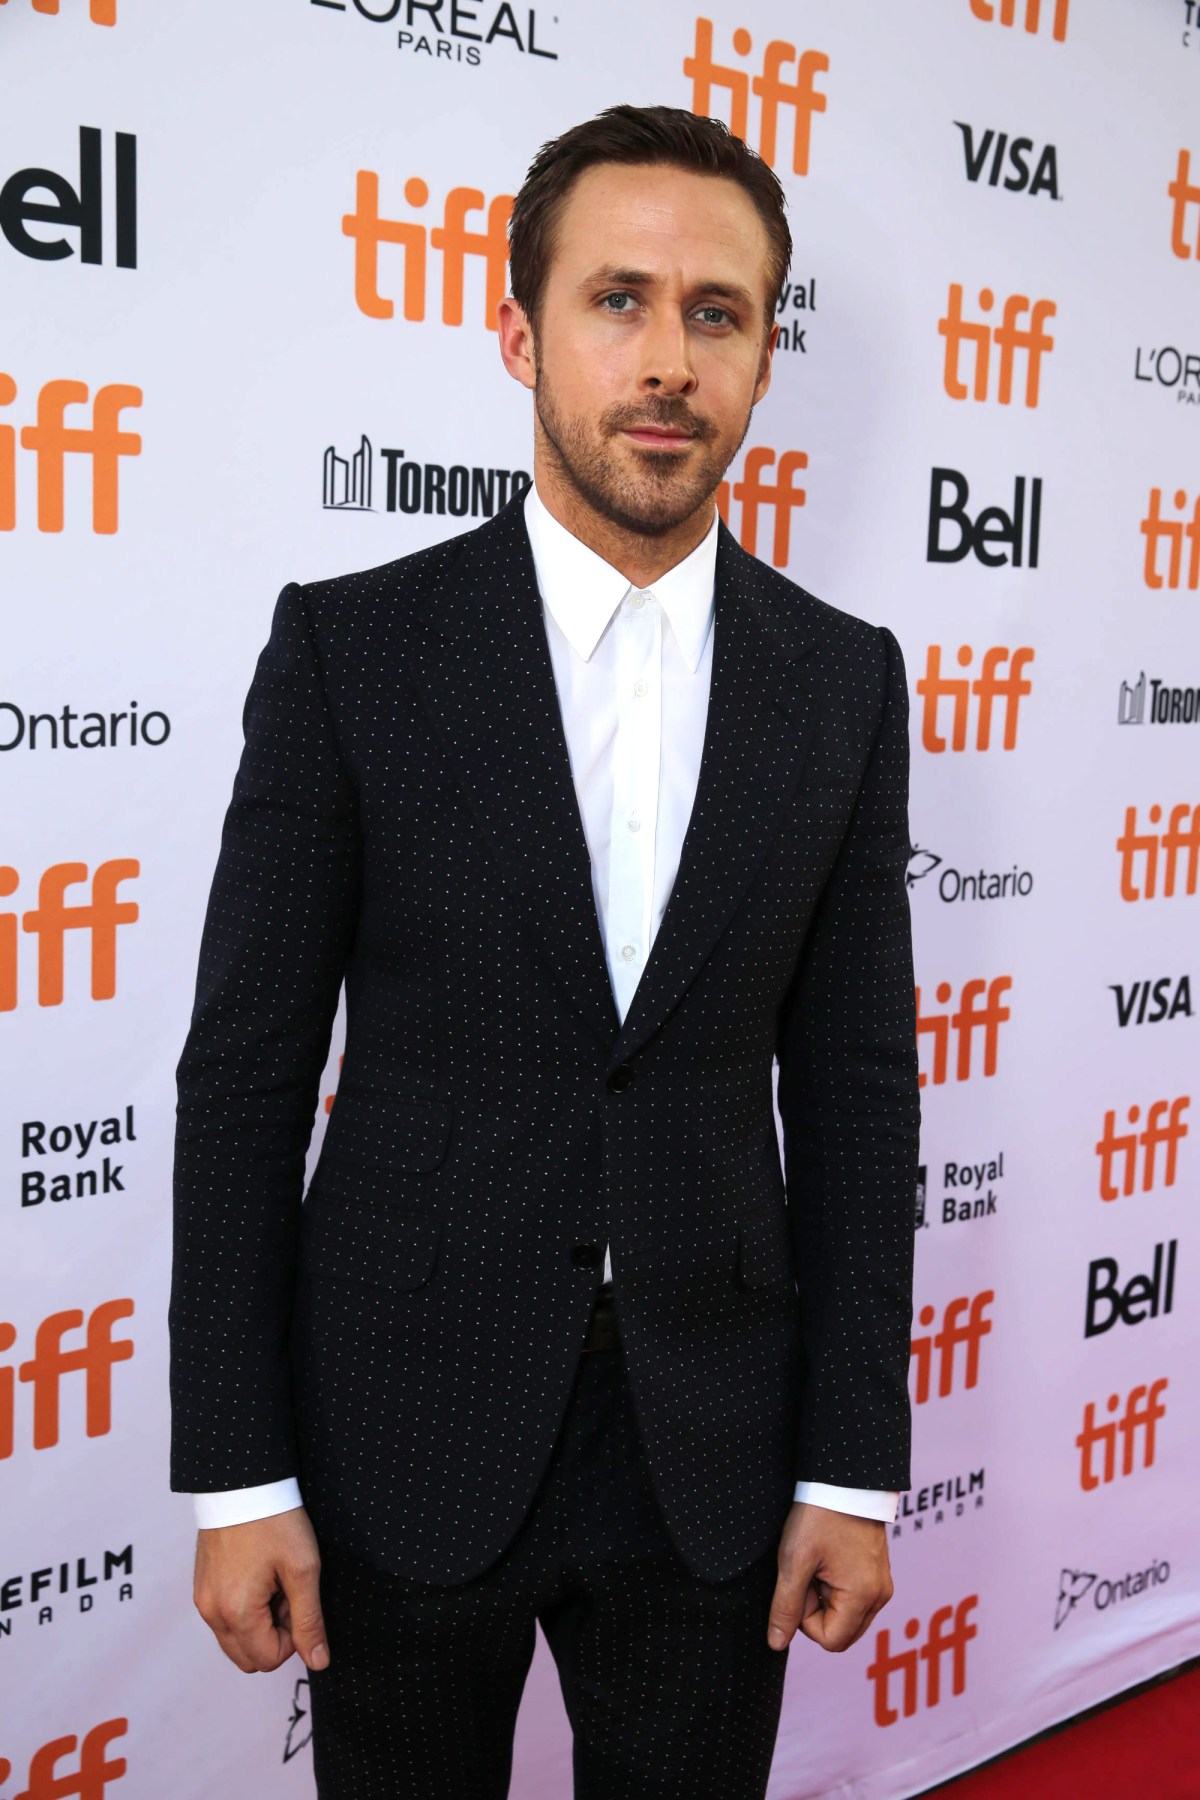 """Ryan Gosling seen at Summit Entertainment's """"La La Land"""" premiere at the 2016 Toronto International Film Festival on Monday, Sept. 12, 2016, in Toronto. (Photo by Eric Charbonneau/Invision for LionsgateAP Images)"""